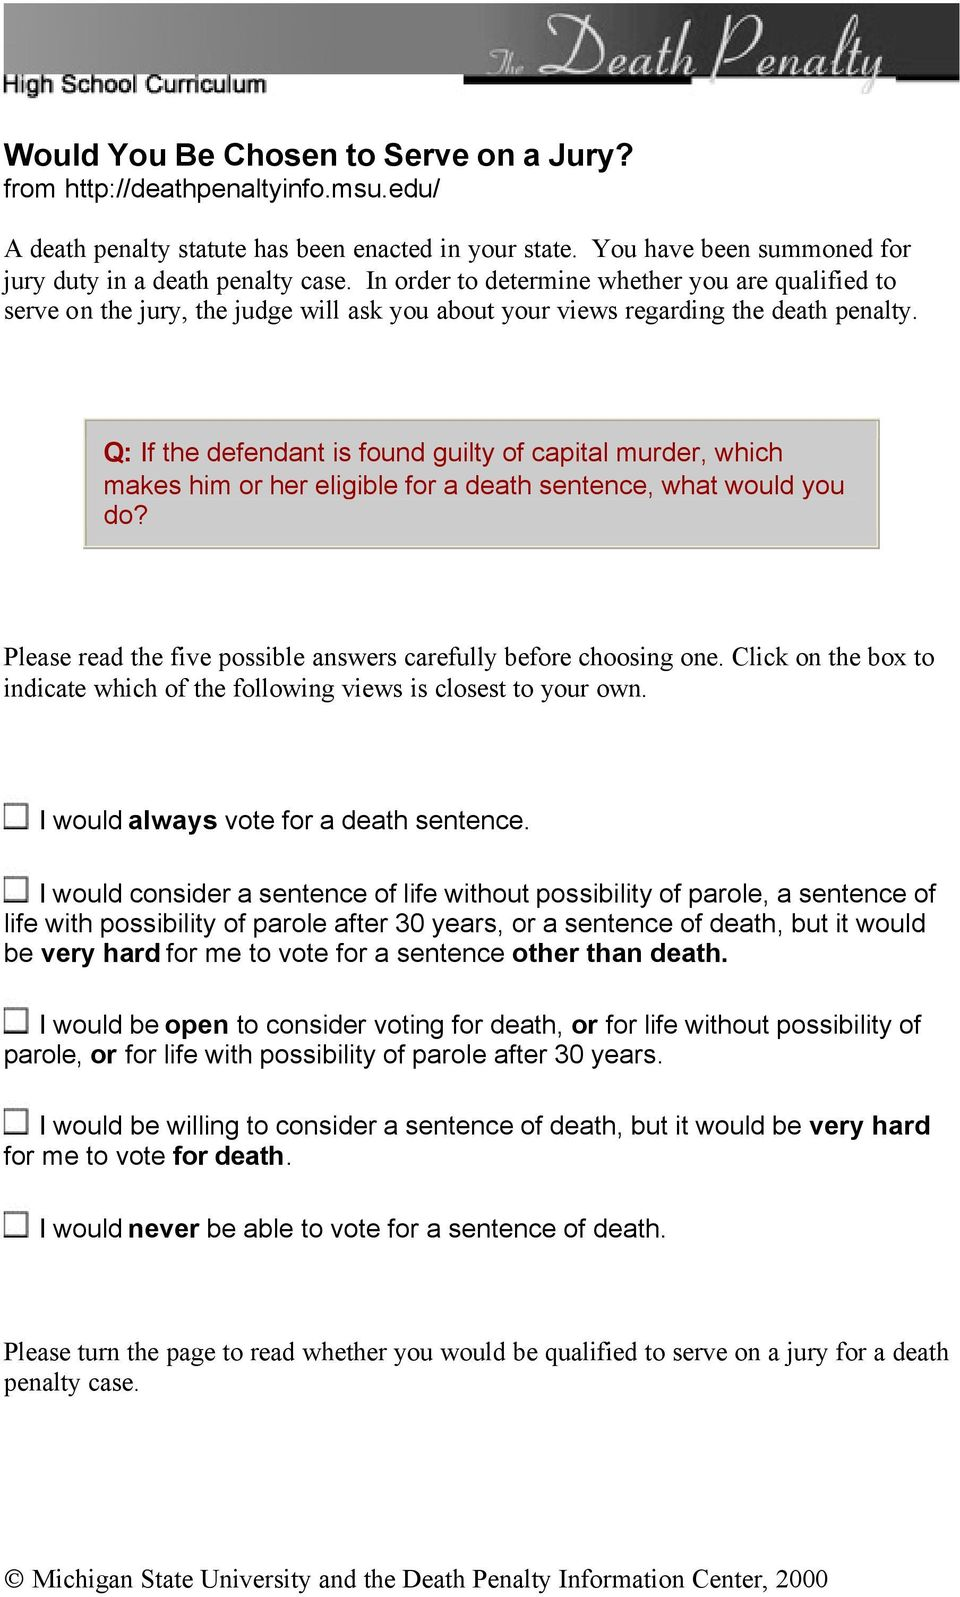 Q: If the defendant is found guilty of capital murder, which makes him or her eligible for a death sentence, what would you do? Please read the five possible answers carefully before choosing one.